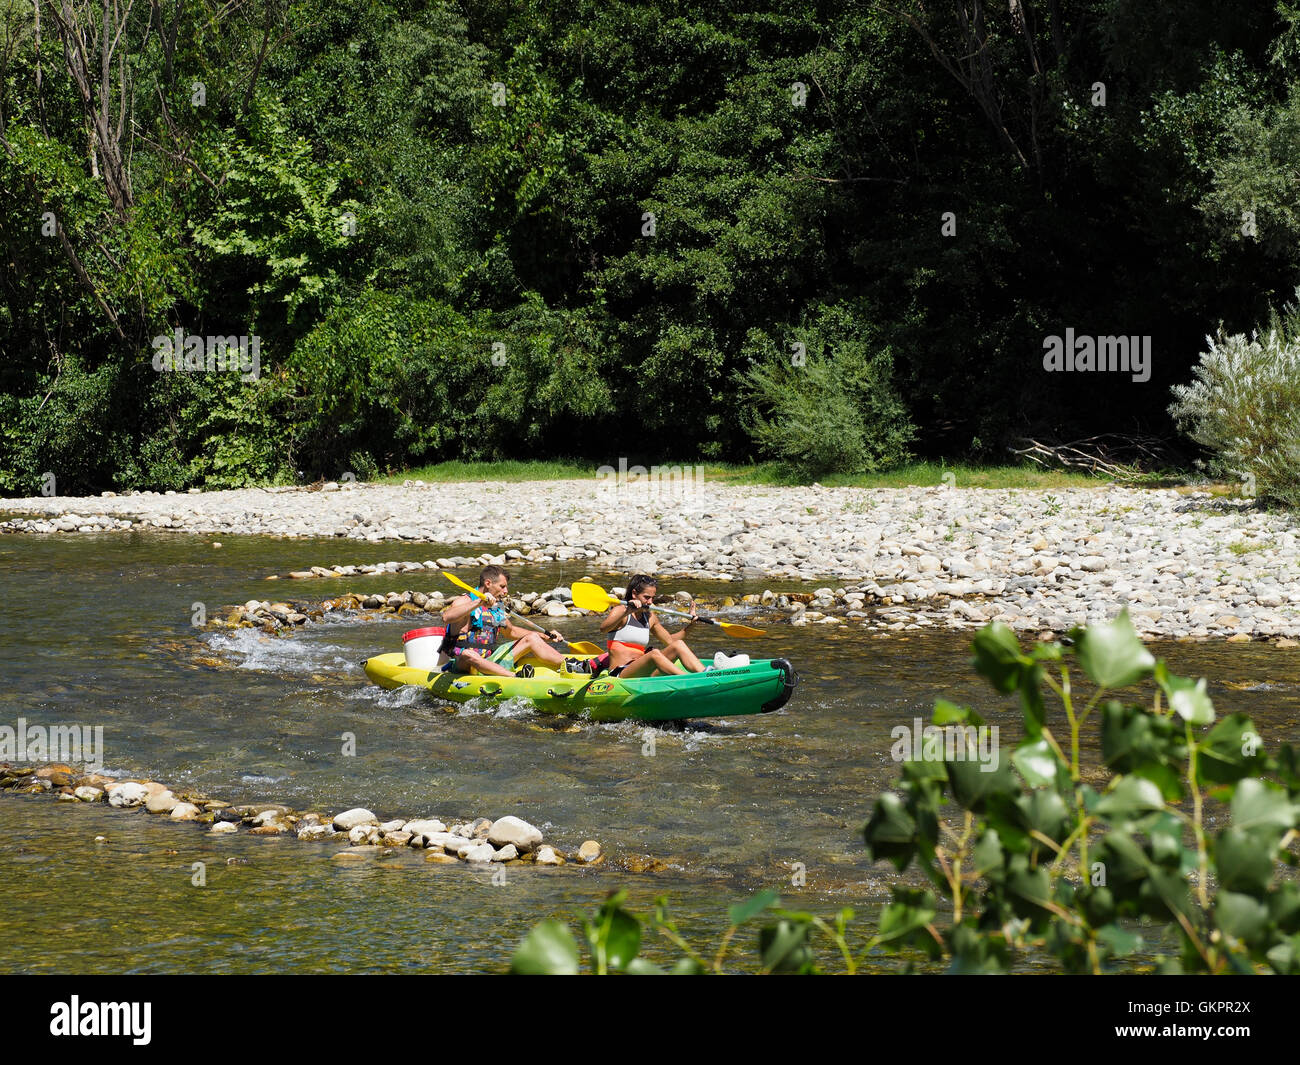 Couple making a canoe trip, a very popular activity in France, this is the Herault river in the Cevennes region. - Stock Image